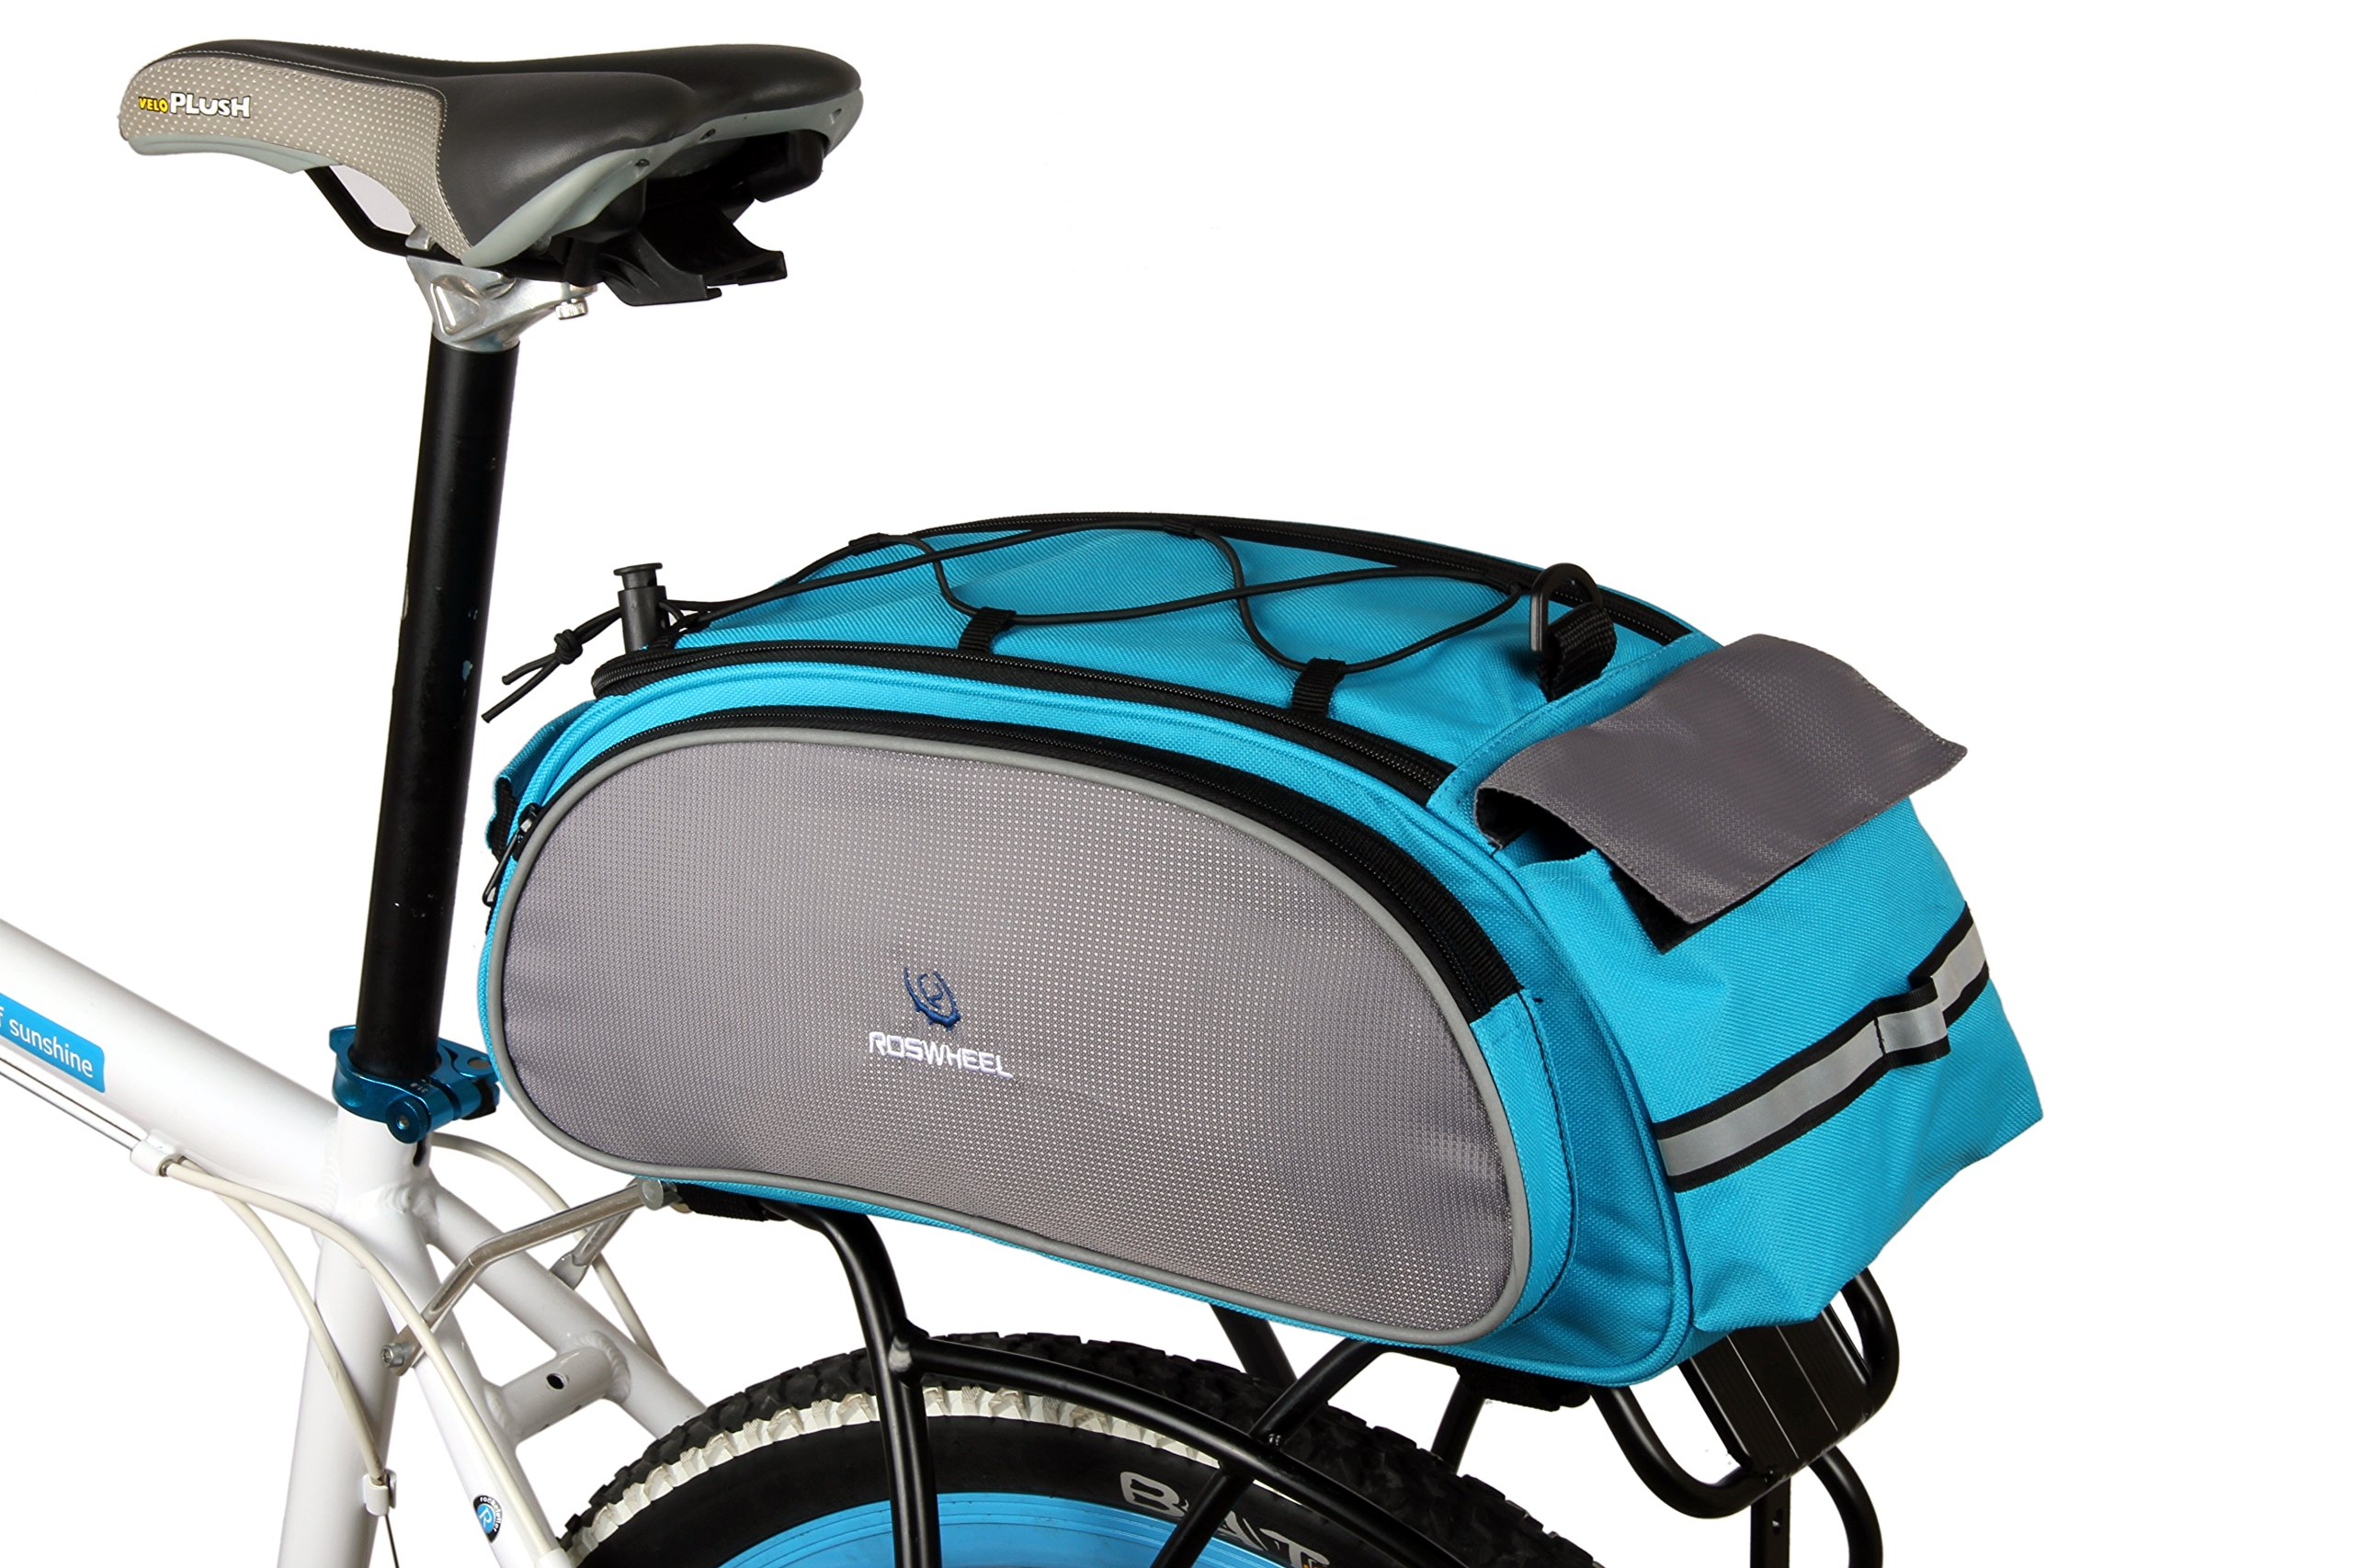 Best Fit For U Roswheel Bicycle Cycling Bike Saddle Rack Seat Cargo Bag Rear Pack Trunk Pannier Handbag Blue Outdoor Traveling New(Blue) by Best Fit For U (Image #1)